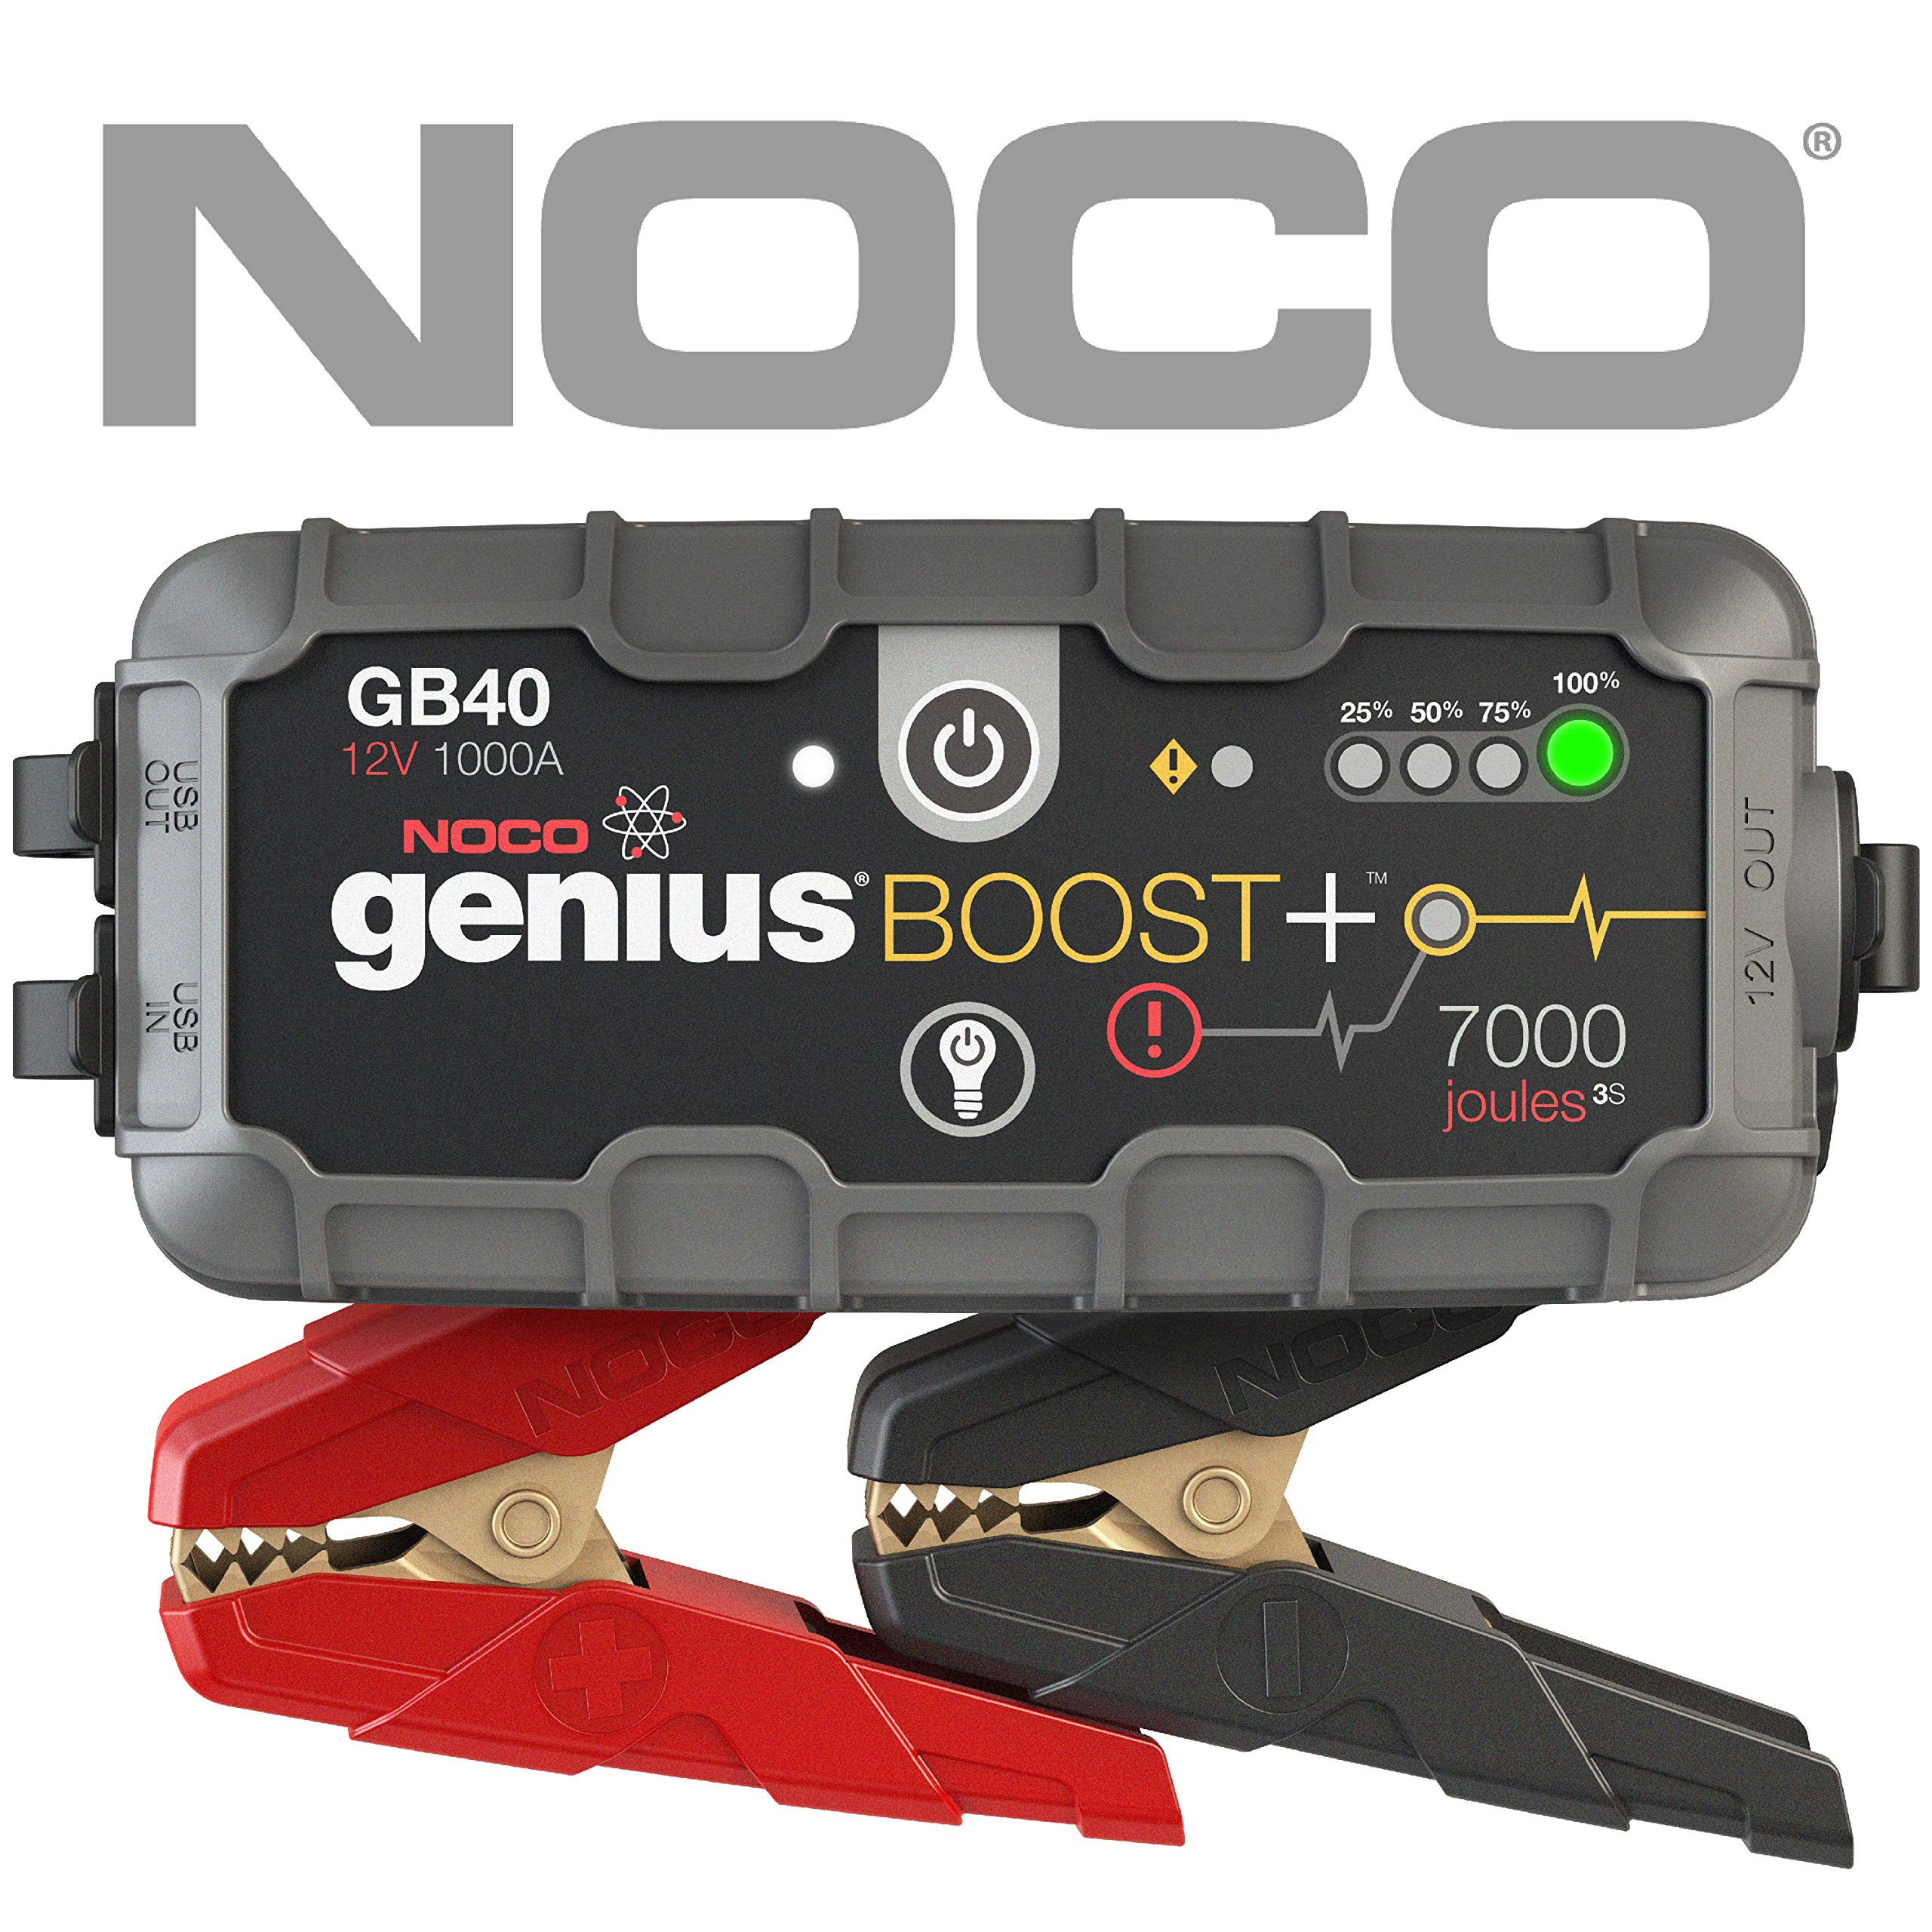 NOCO Boost Plus GB40 1000 Amp 12V UltraSafe Lithium Jump Starter for up to 6L Gasoline and 3L Diesel Engines by NOCO